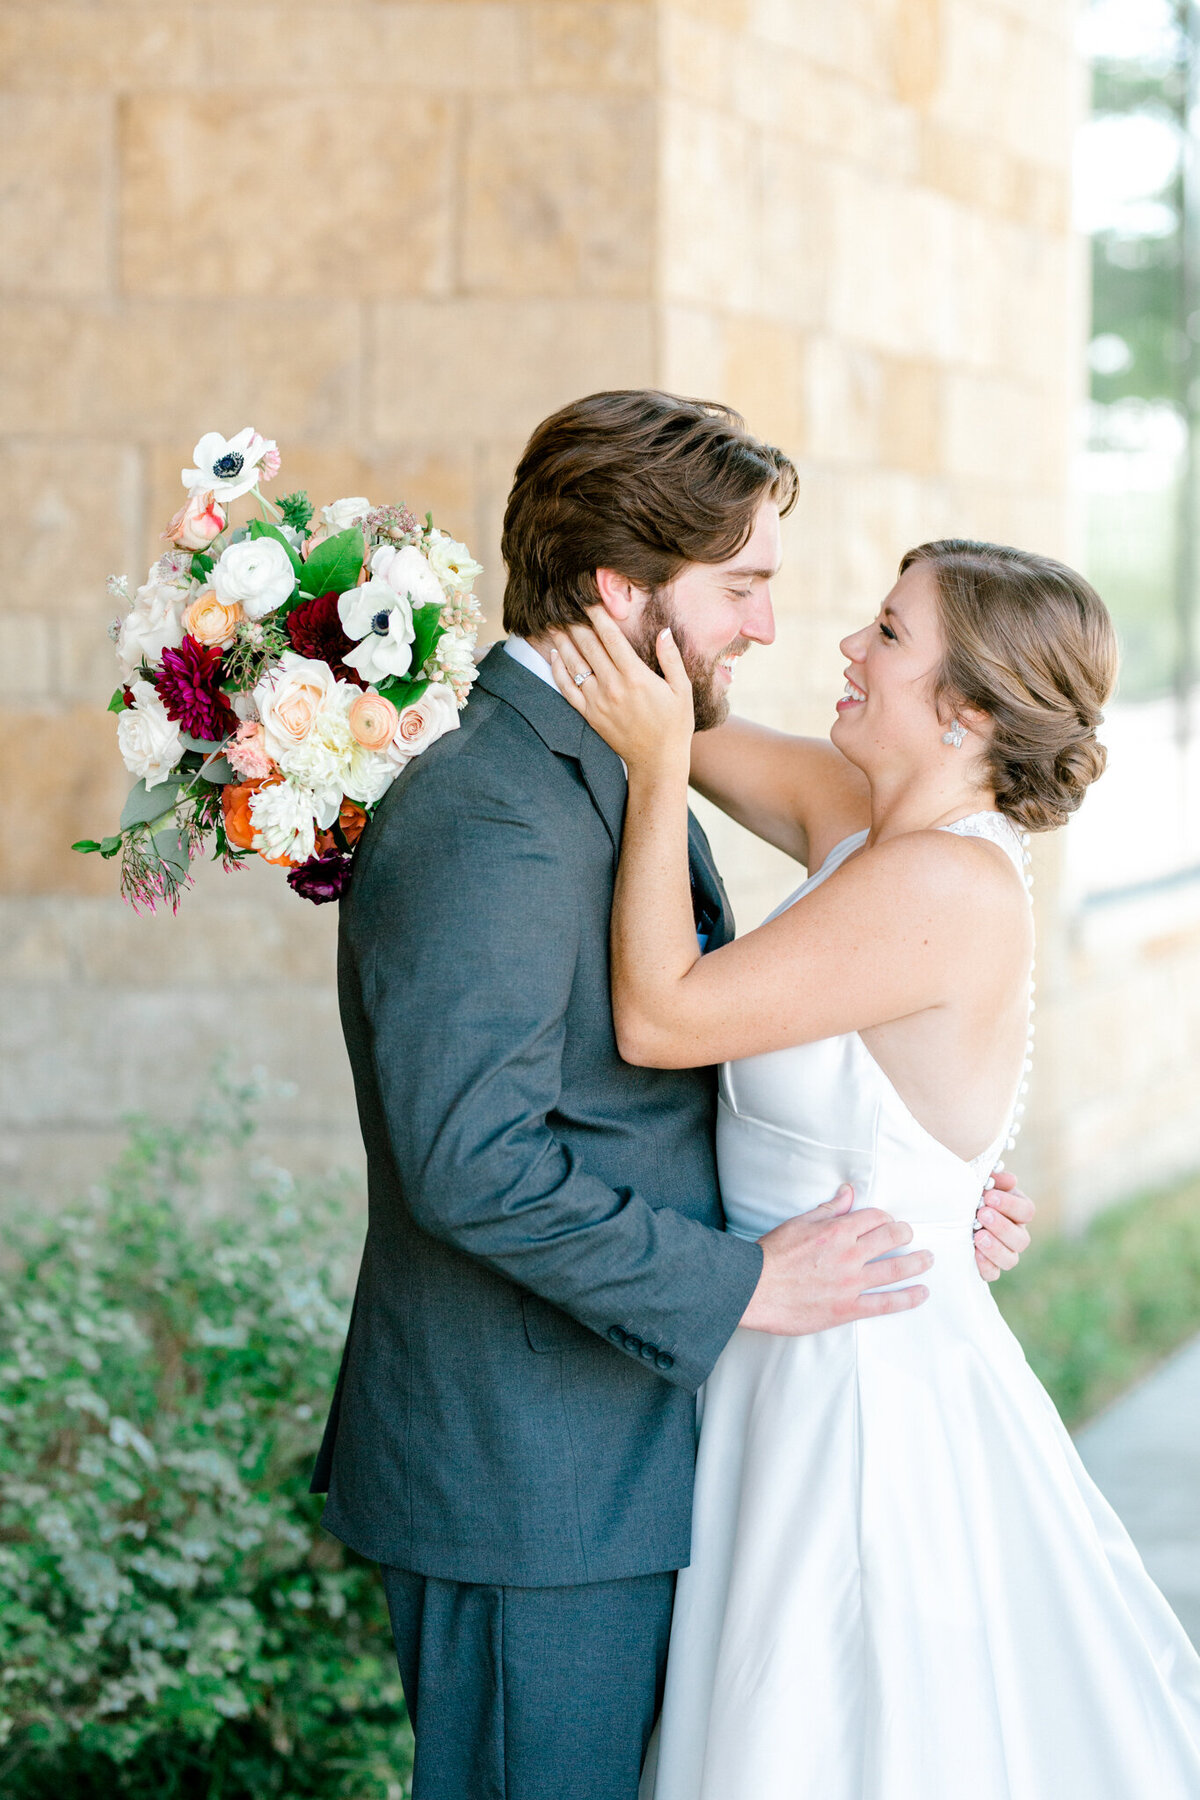 Kaylee & Michael's Wedding at Watermark Community Church | Dallas Wedding Photographer | Sami Kathryn Photography-50